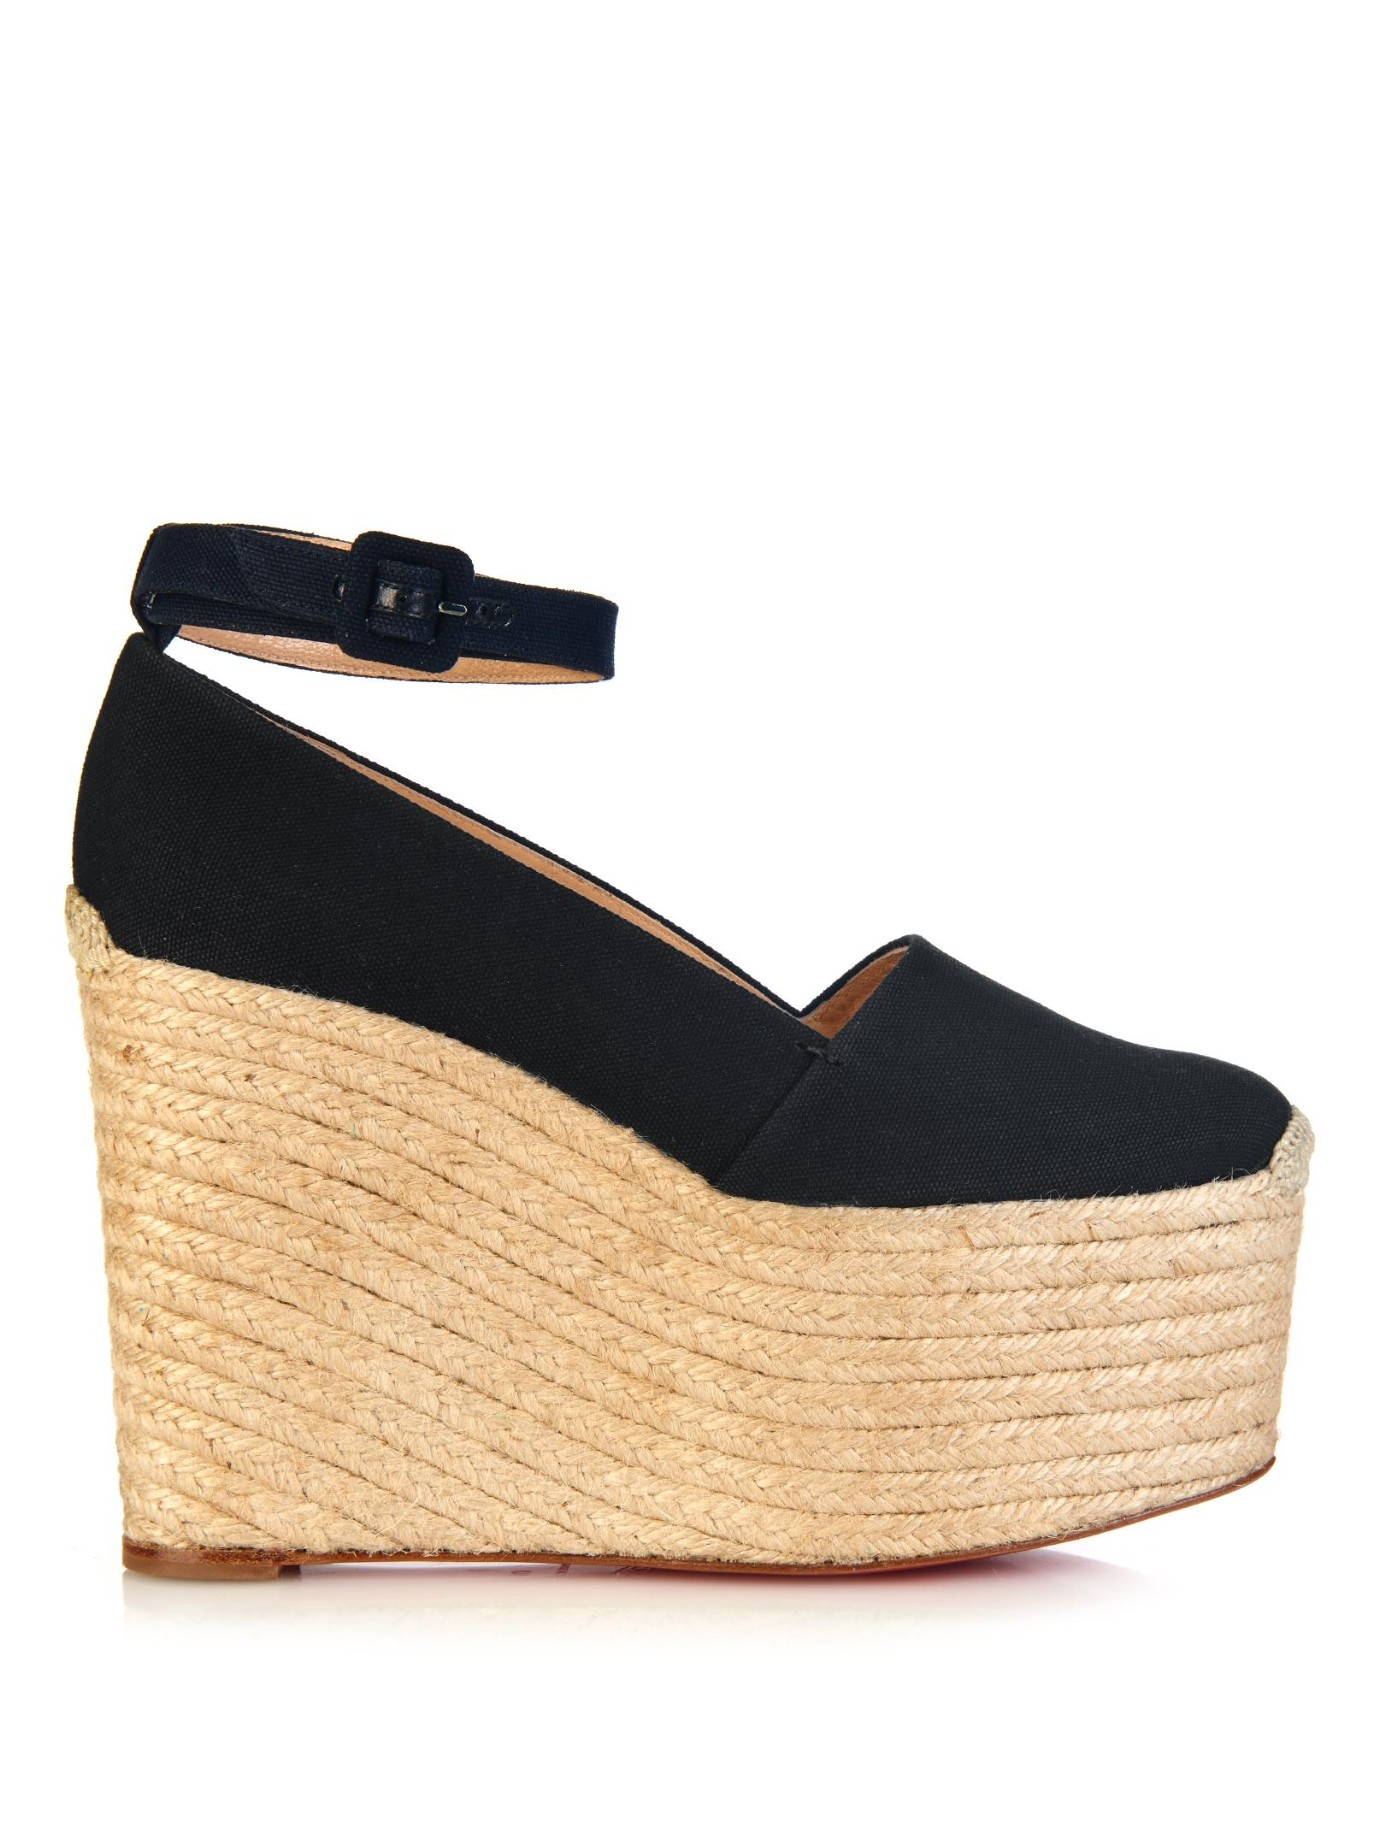 studded louboutins - Christian louboutin Dehia Canvas Wedge Espadrilles in Black | Lyst